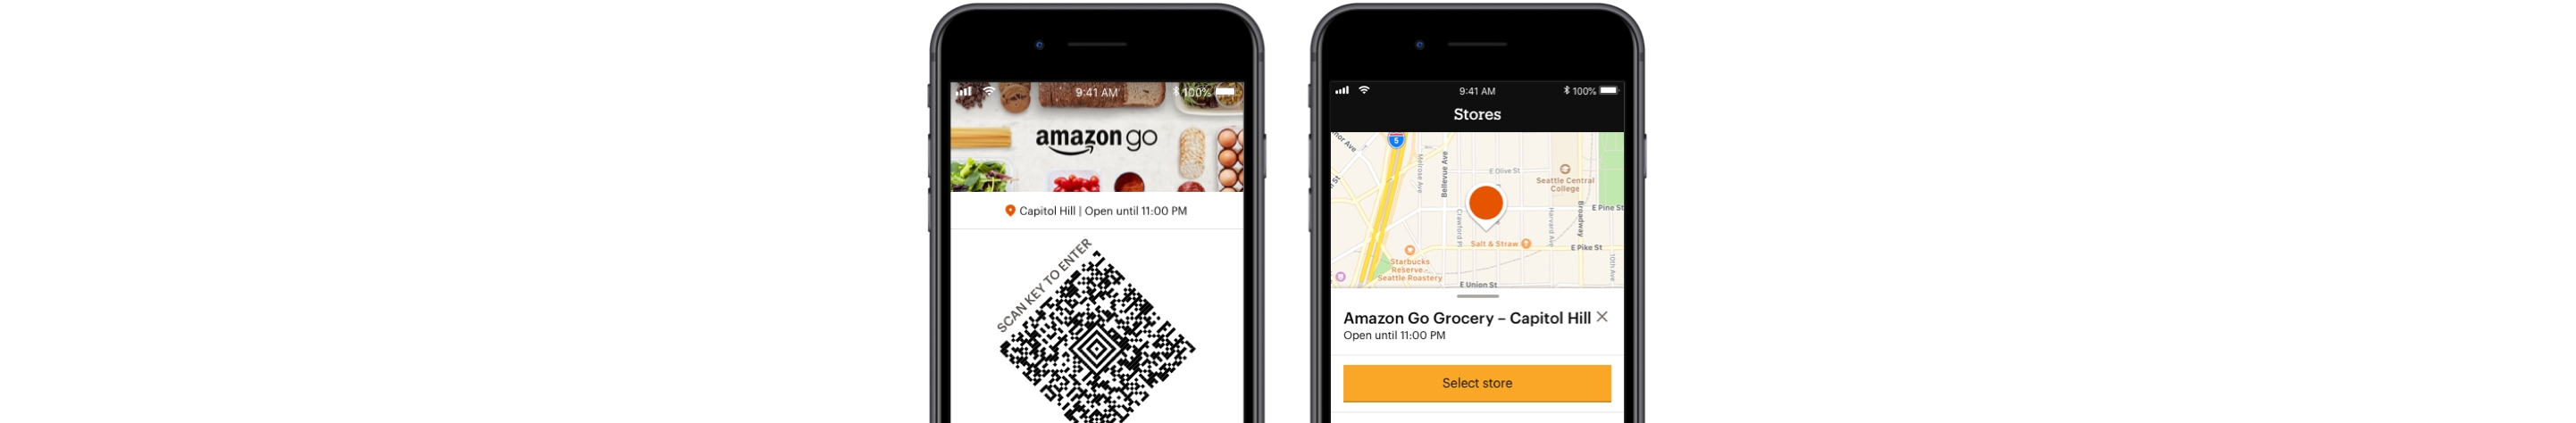 Amazon Go App images